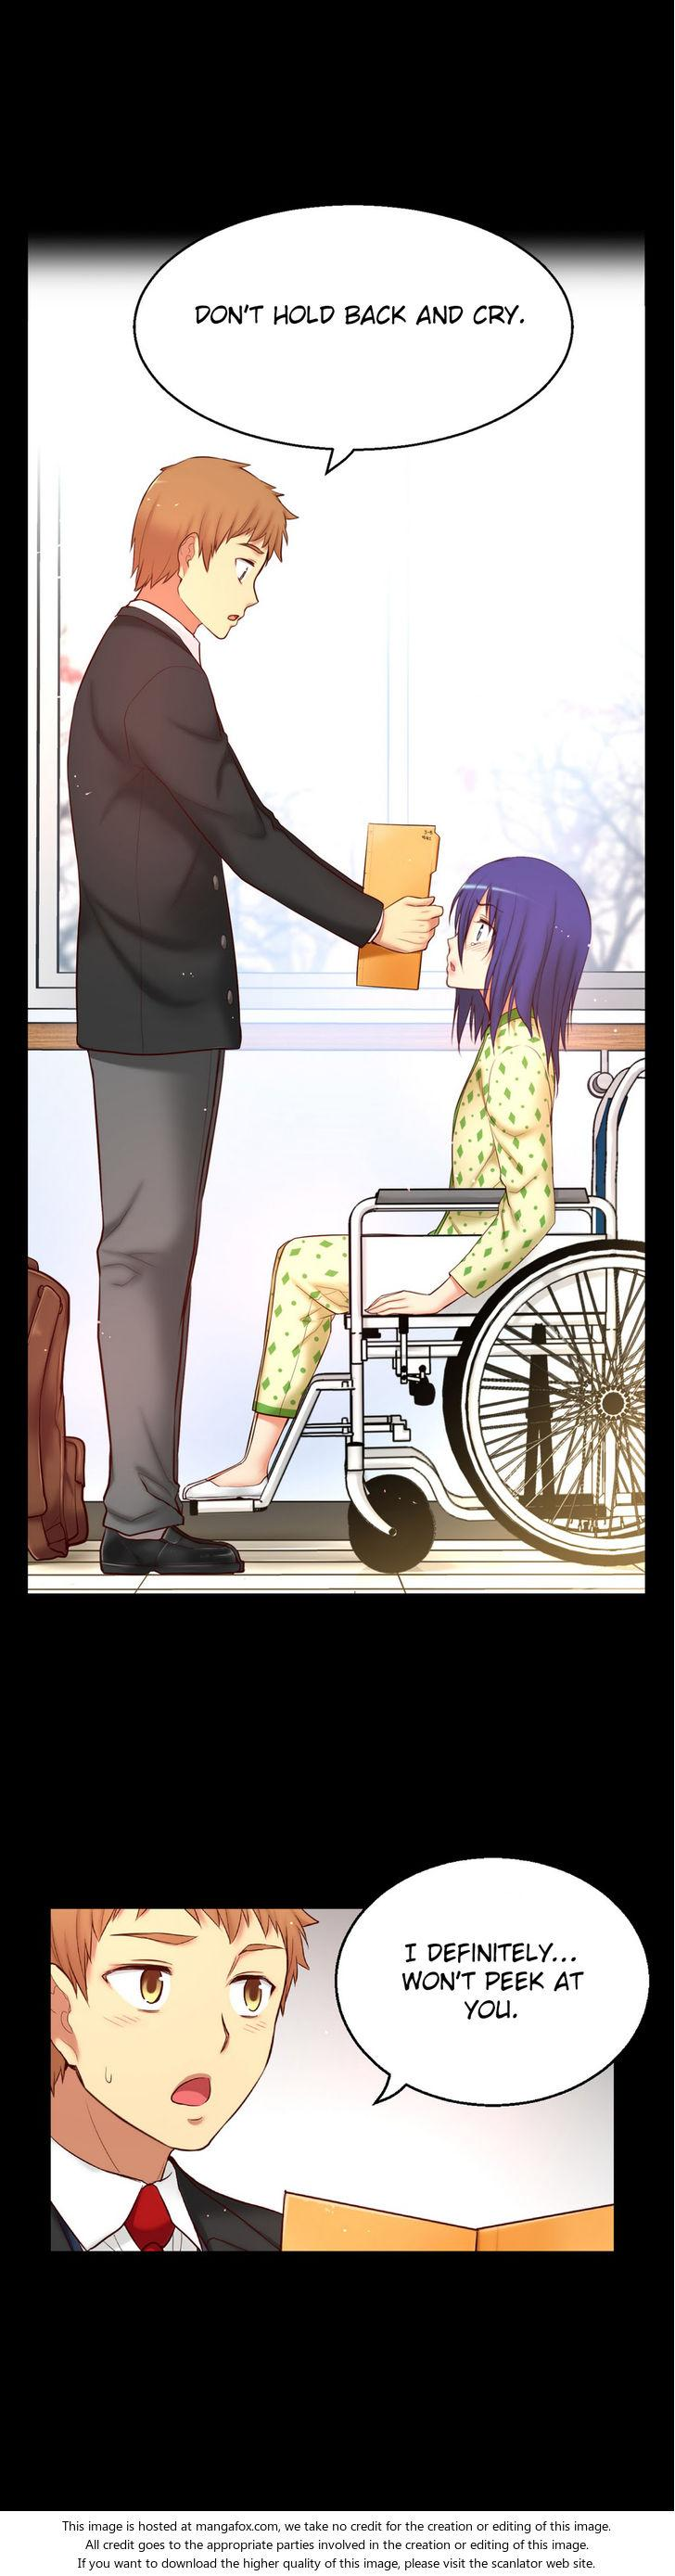 [Donggul Gom] She is Young (English) Part 1/2 1395